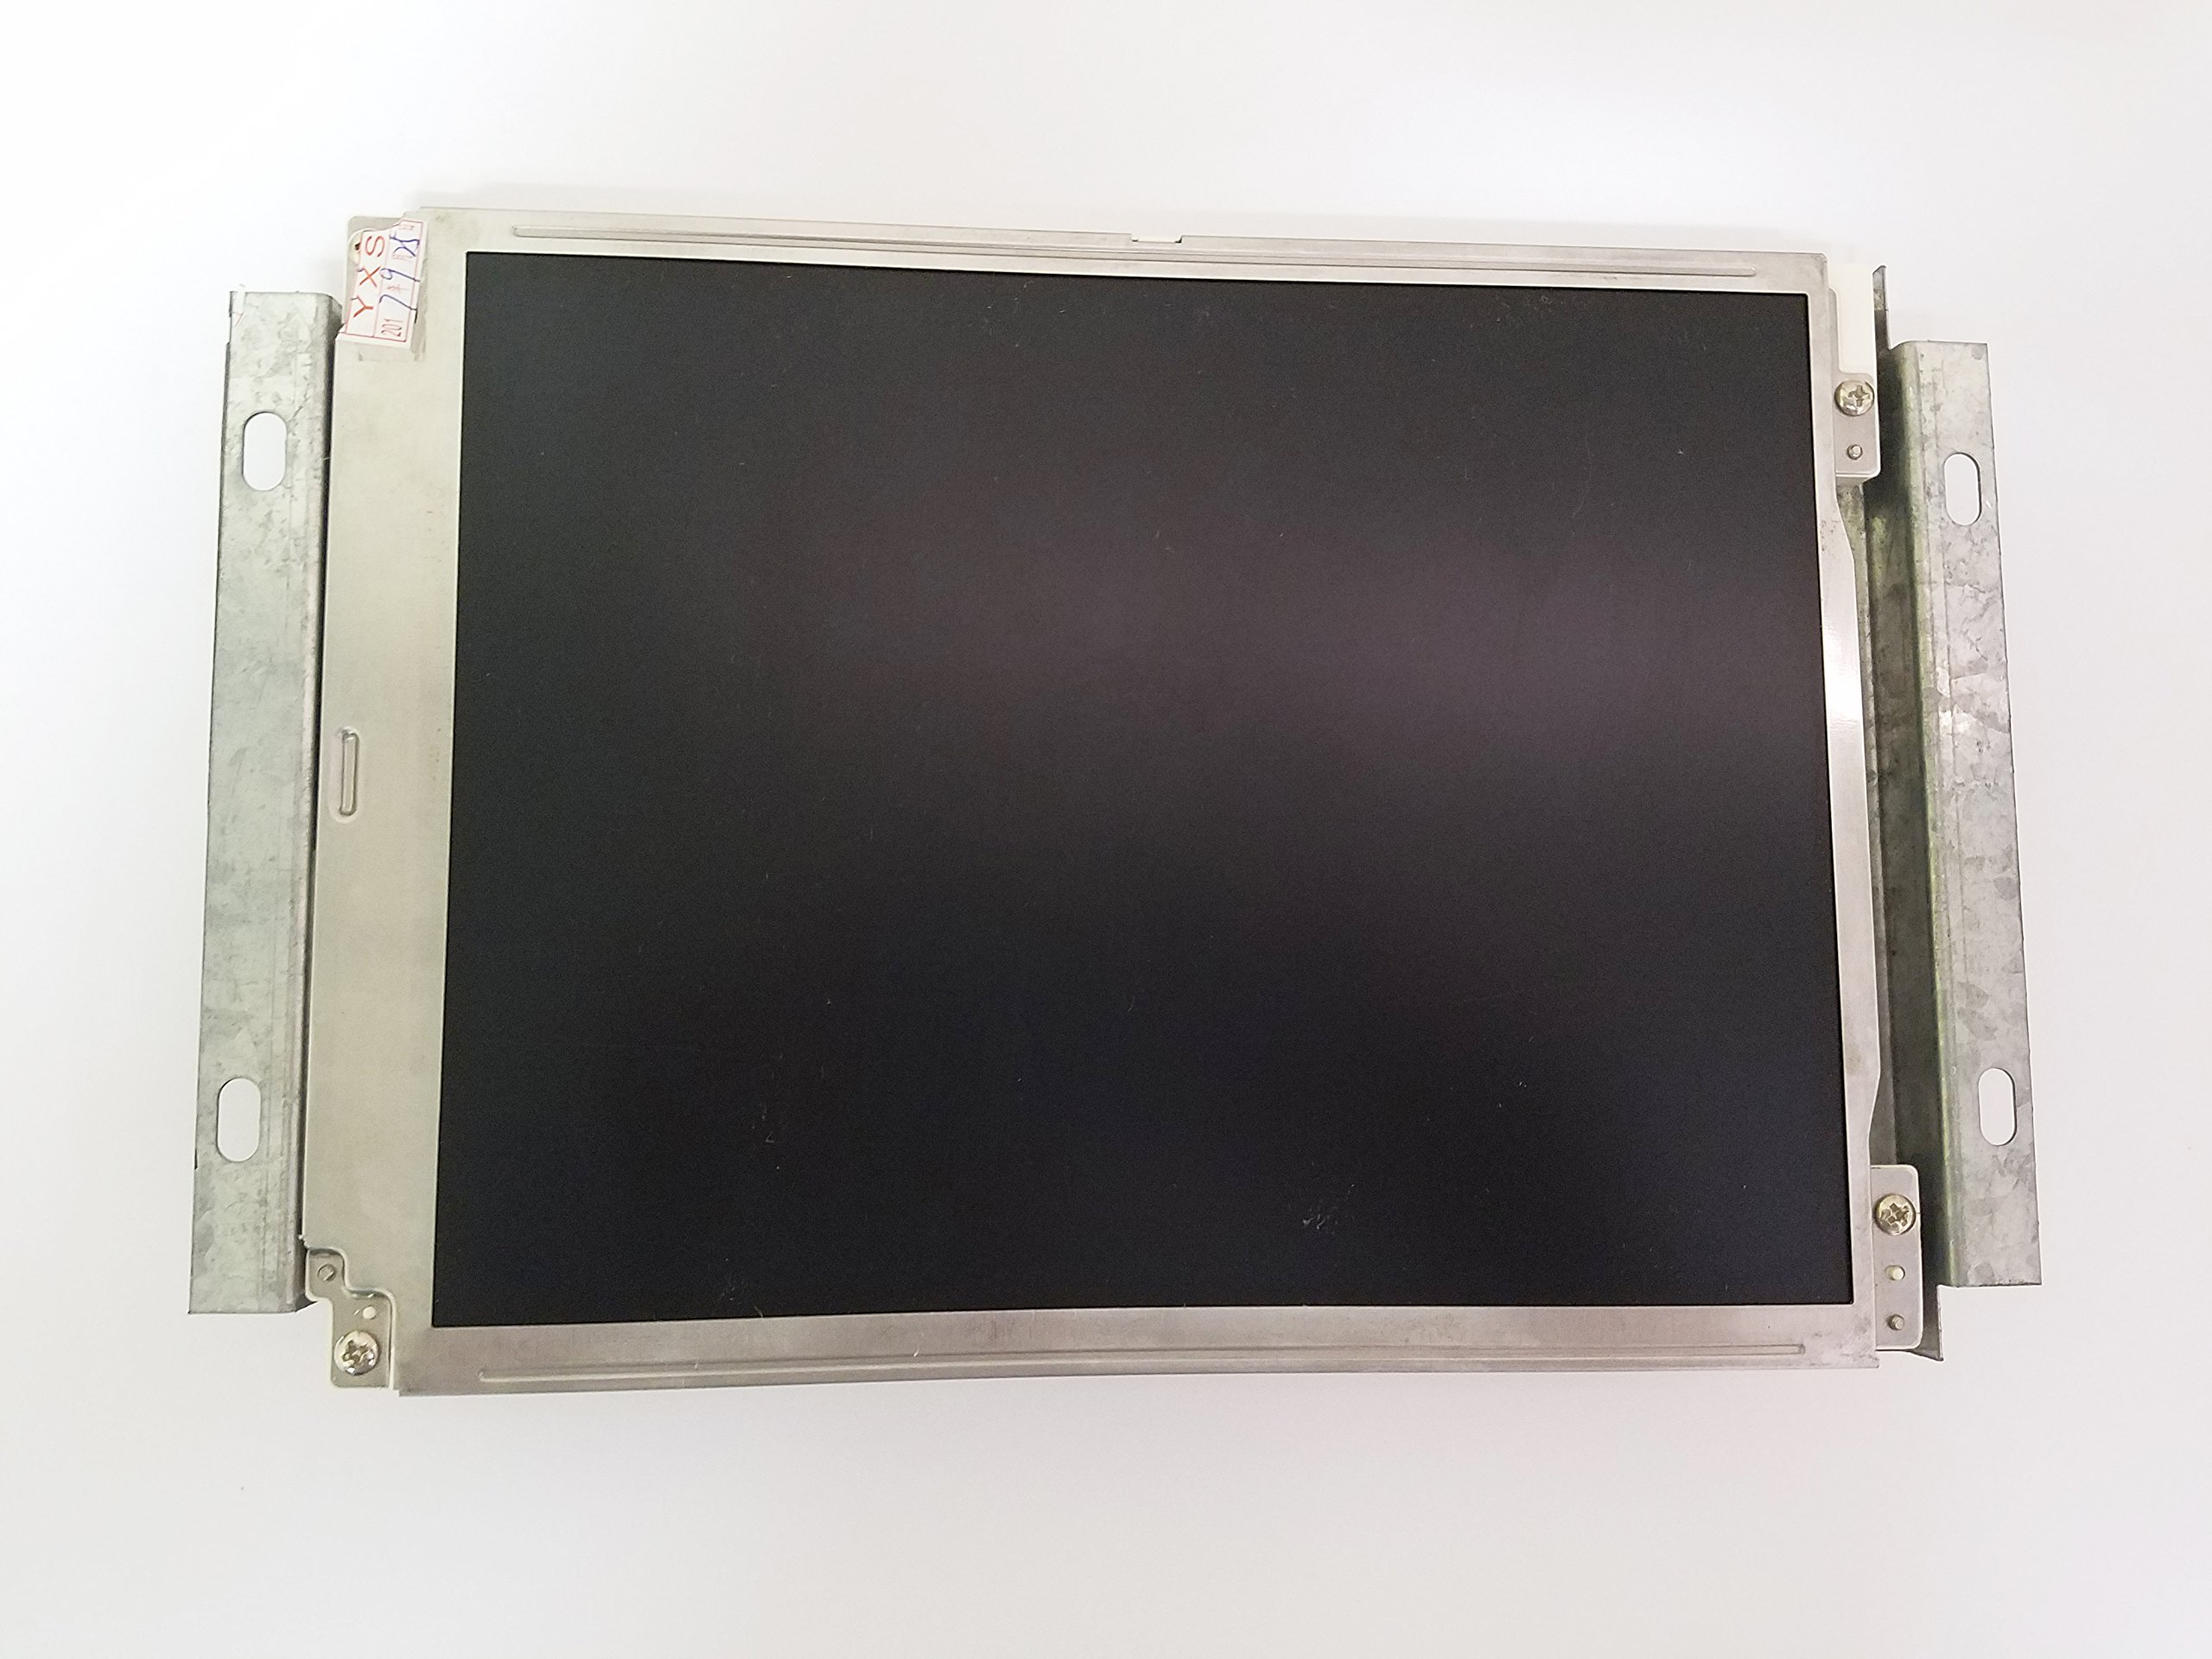 10.4 Inch Arcade Game TFT LCD Monitor for Arcade Jamma / MAME / MultiCade by Atomic Market